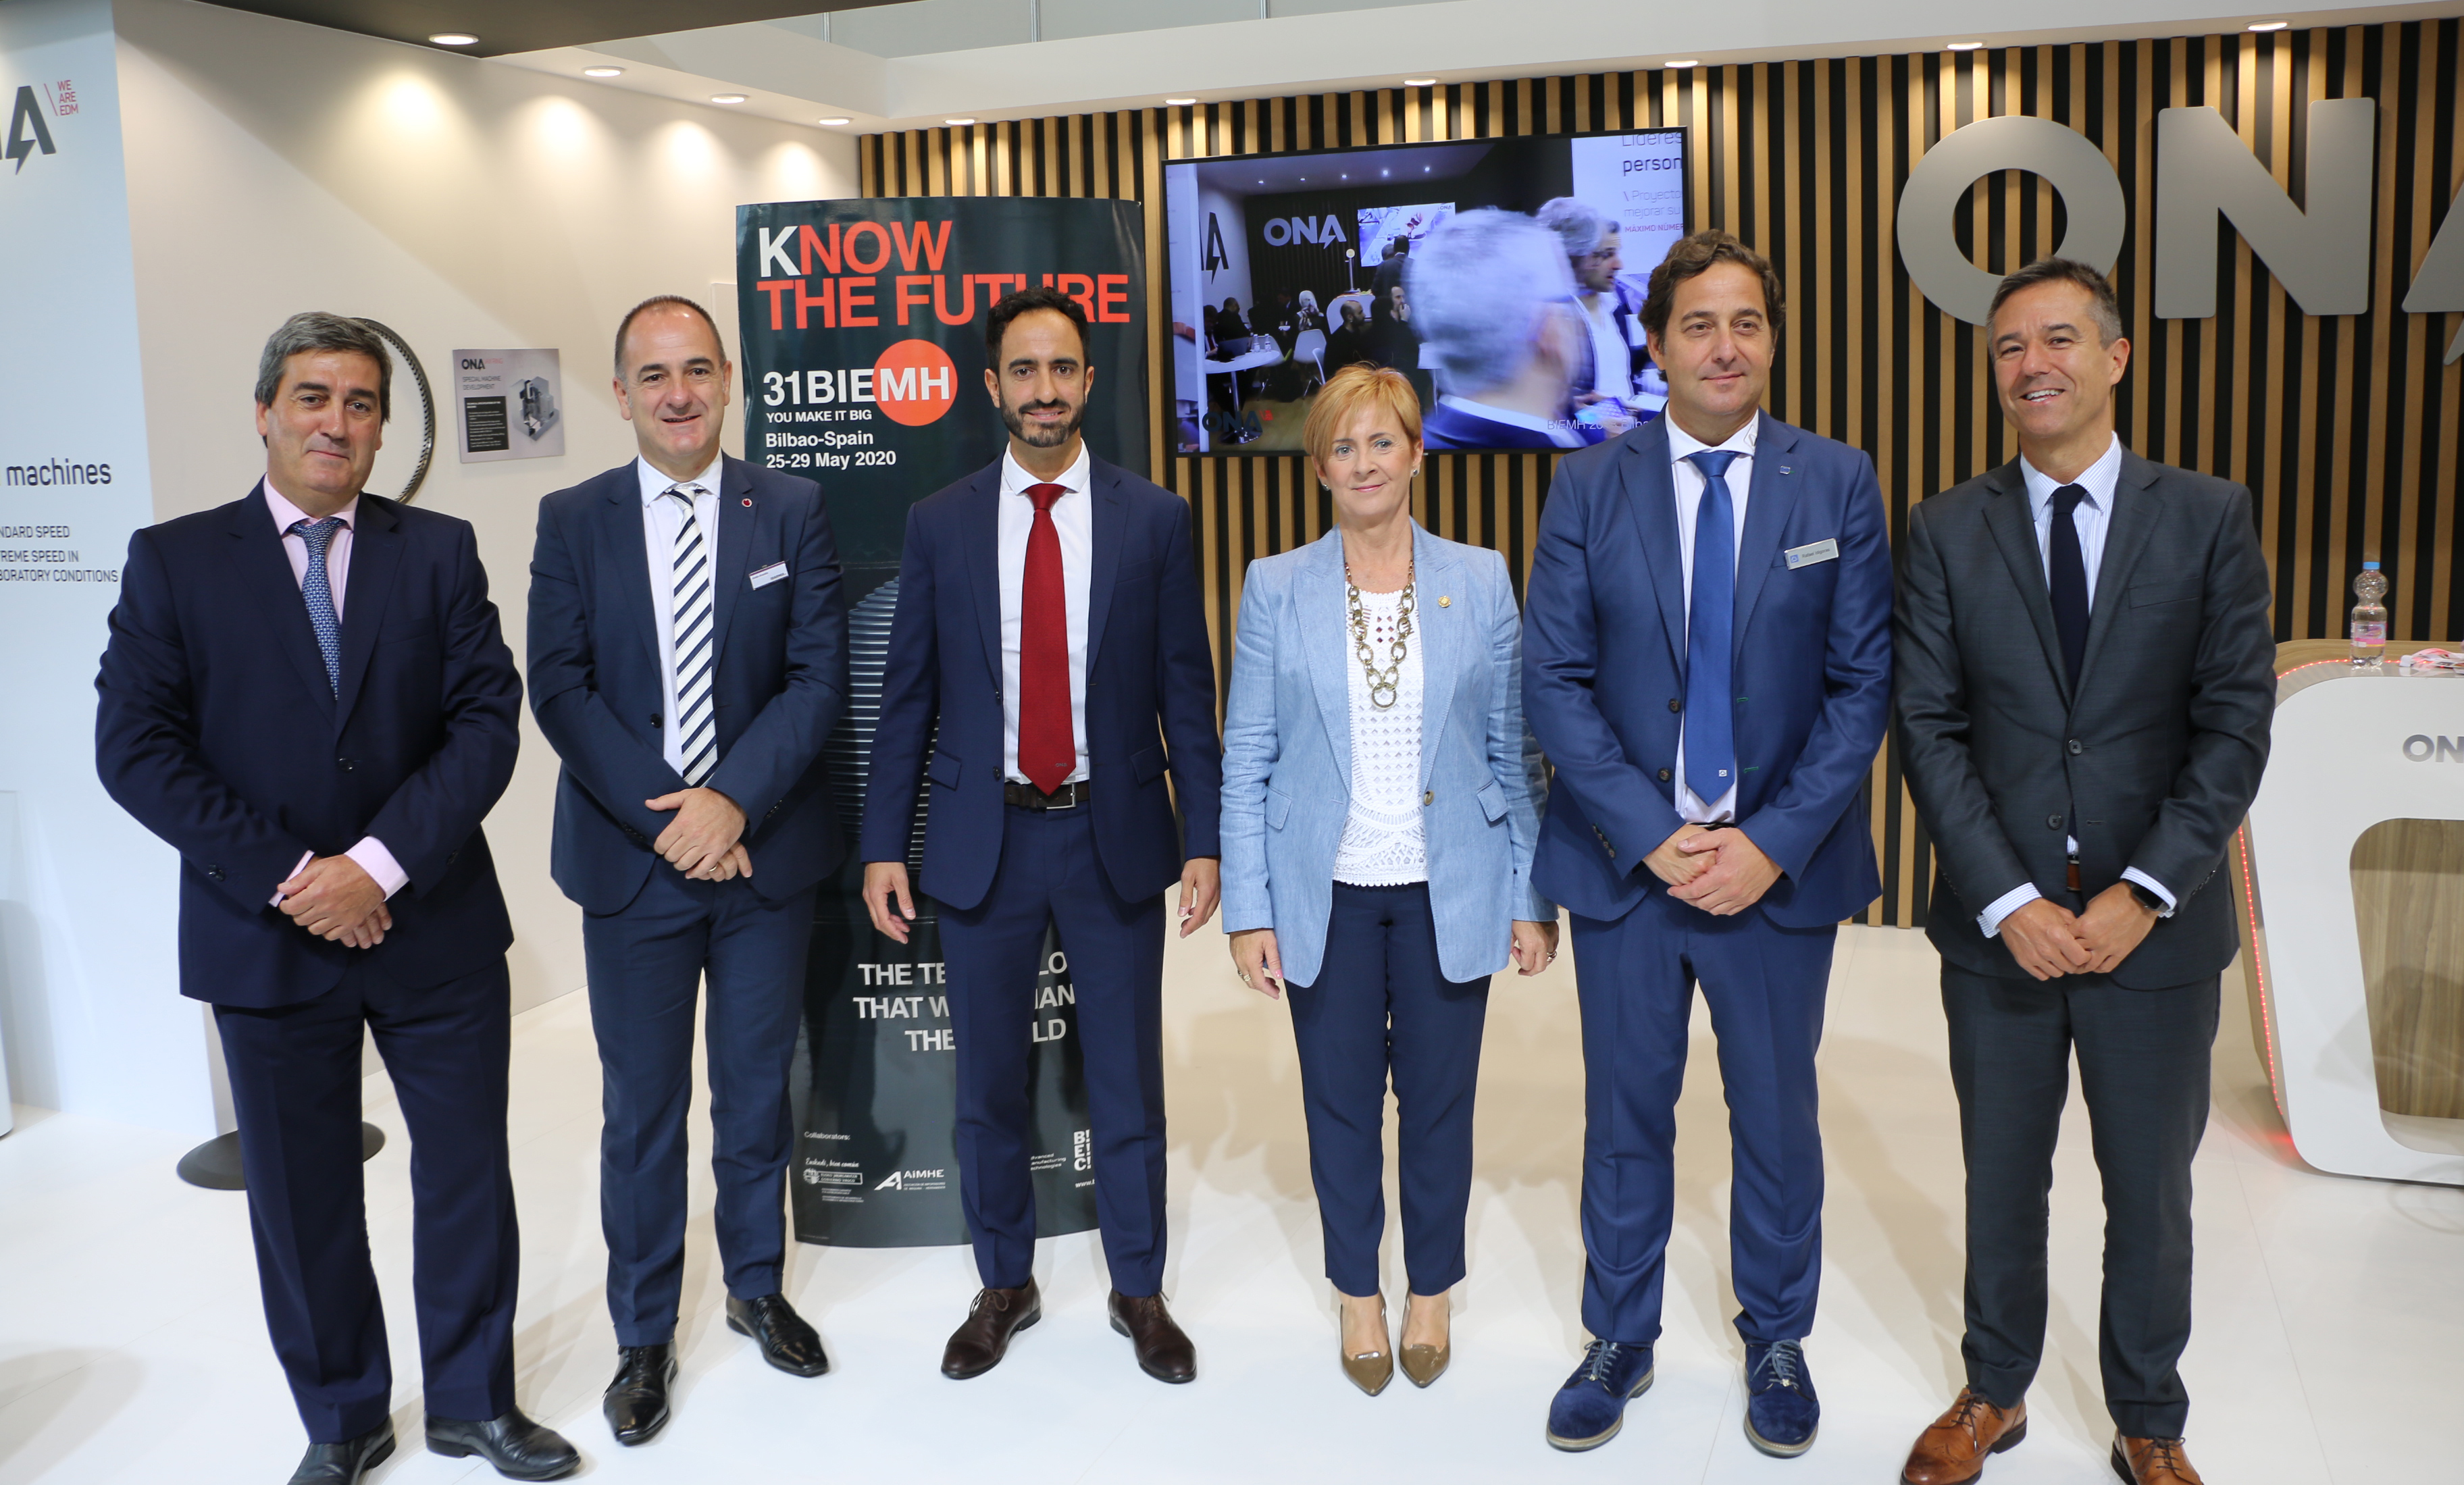 The BIEMH International Machine Tool Exhibition 2020 launched at the Hannover EMO